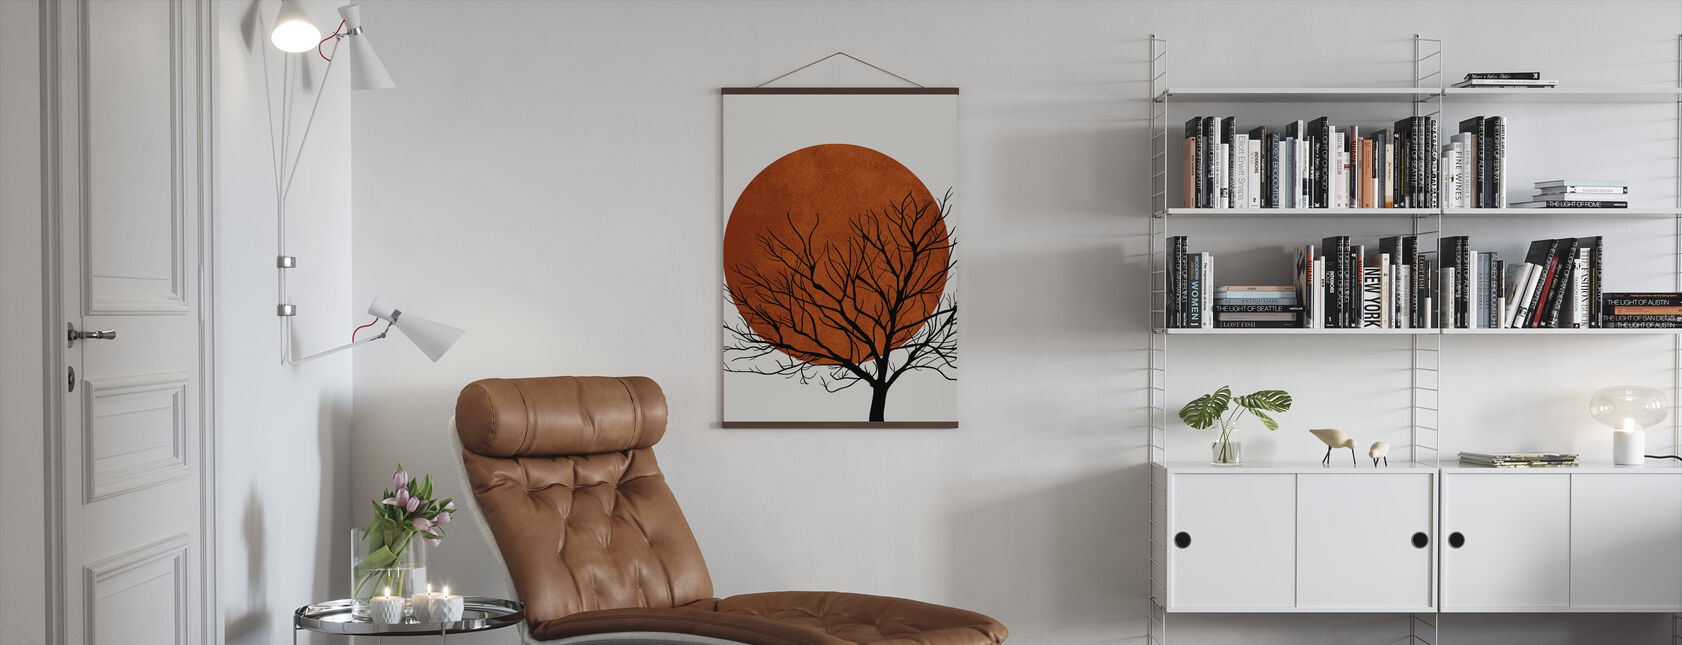 Warm Winter - Poster - Living Room